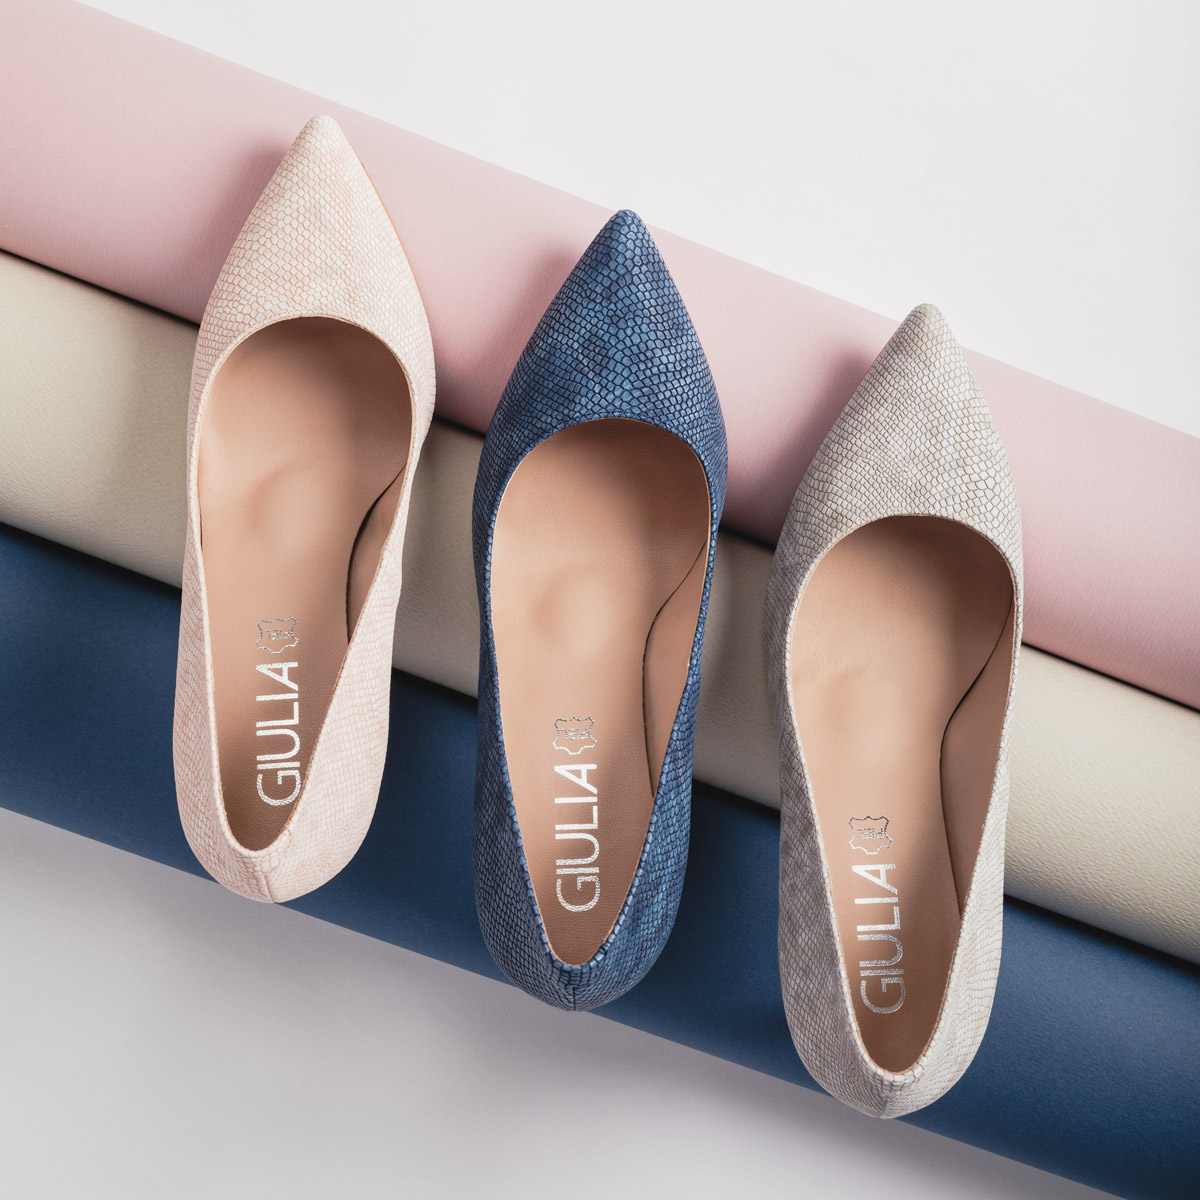 chaussures guilia